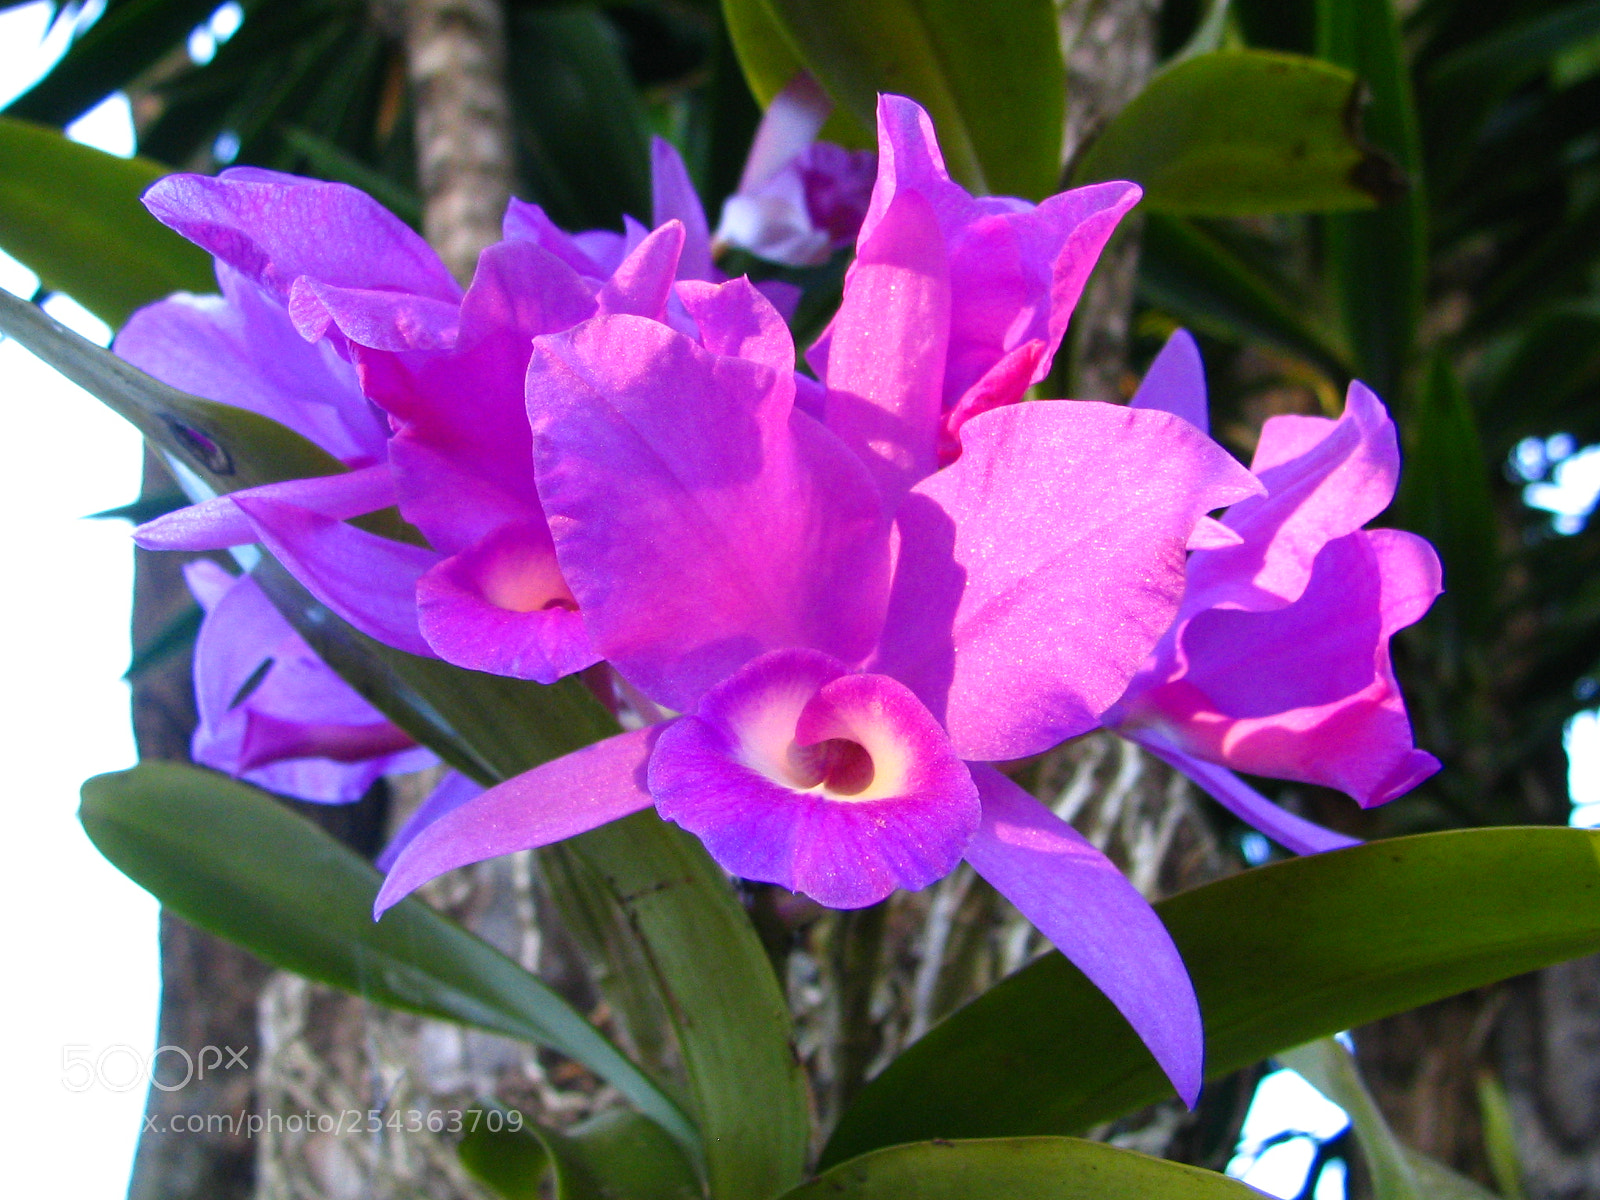 """Canon POWERSHOT S1 IS sample photo. """"Orchid"""" photography"""